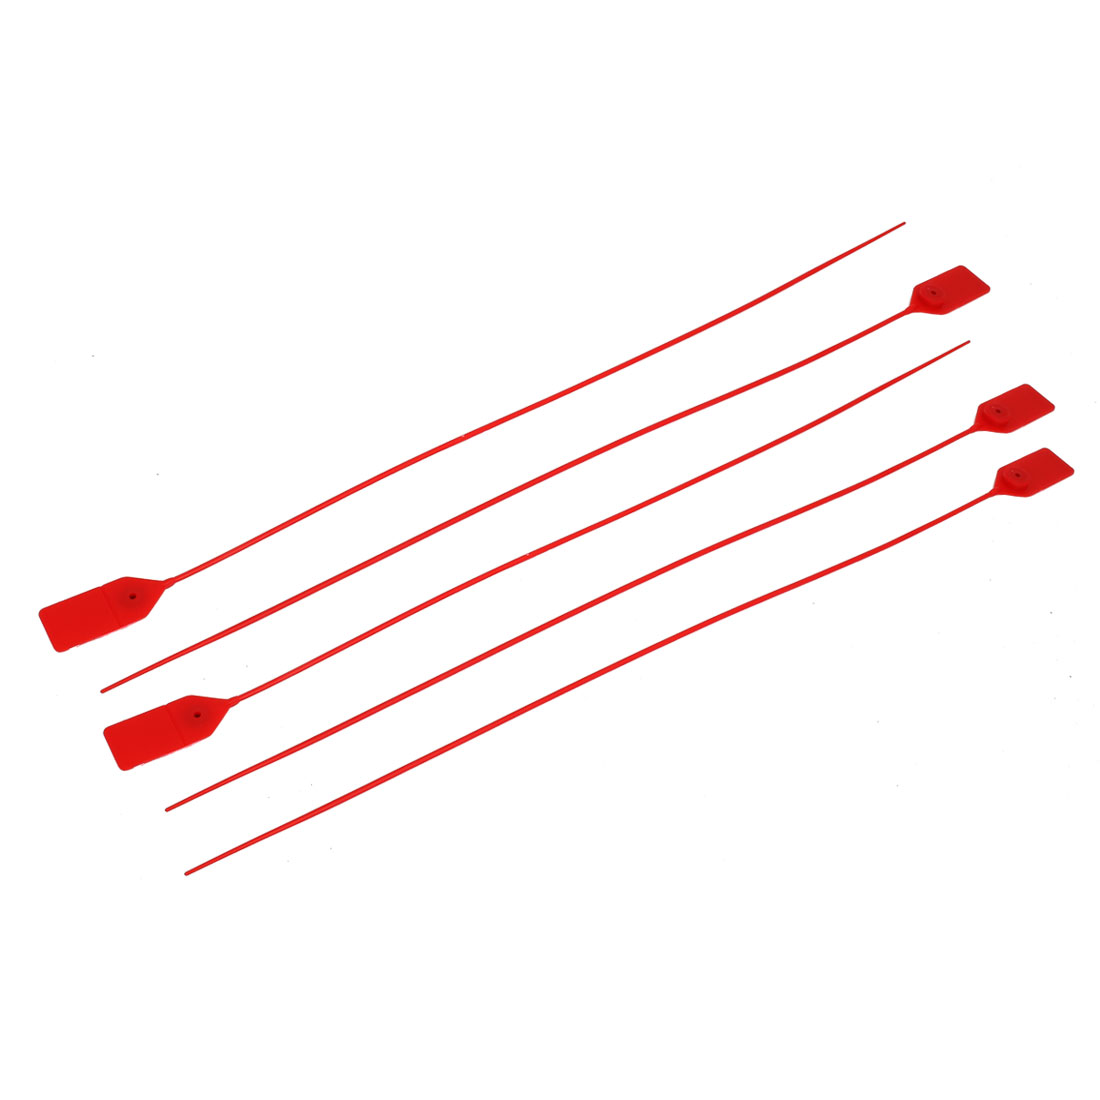 5pcs 500mm Length Plastic 30mmx23mm Label Marker Cable Tie Strap Zip Red - image 4 de 4